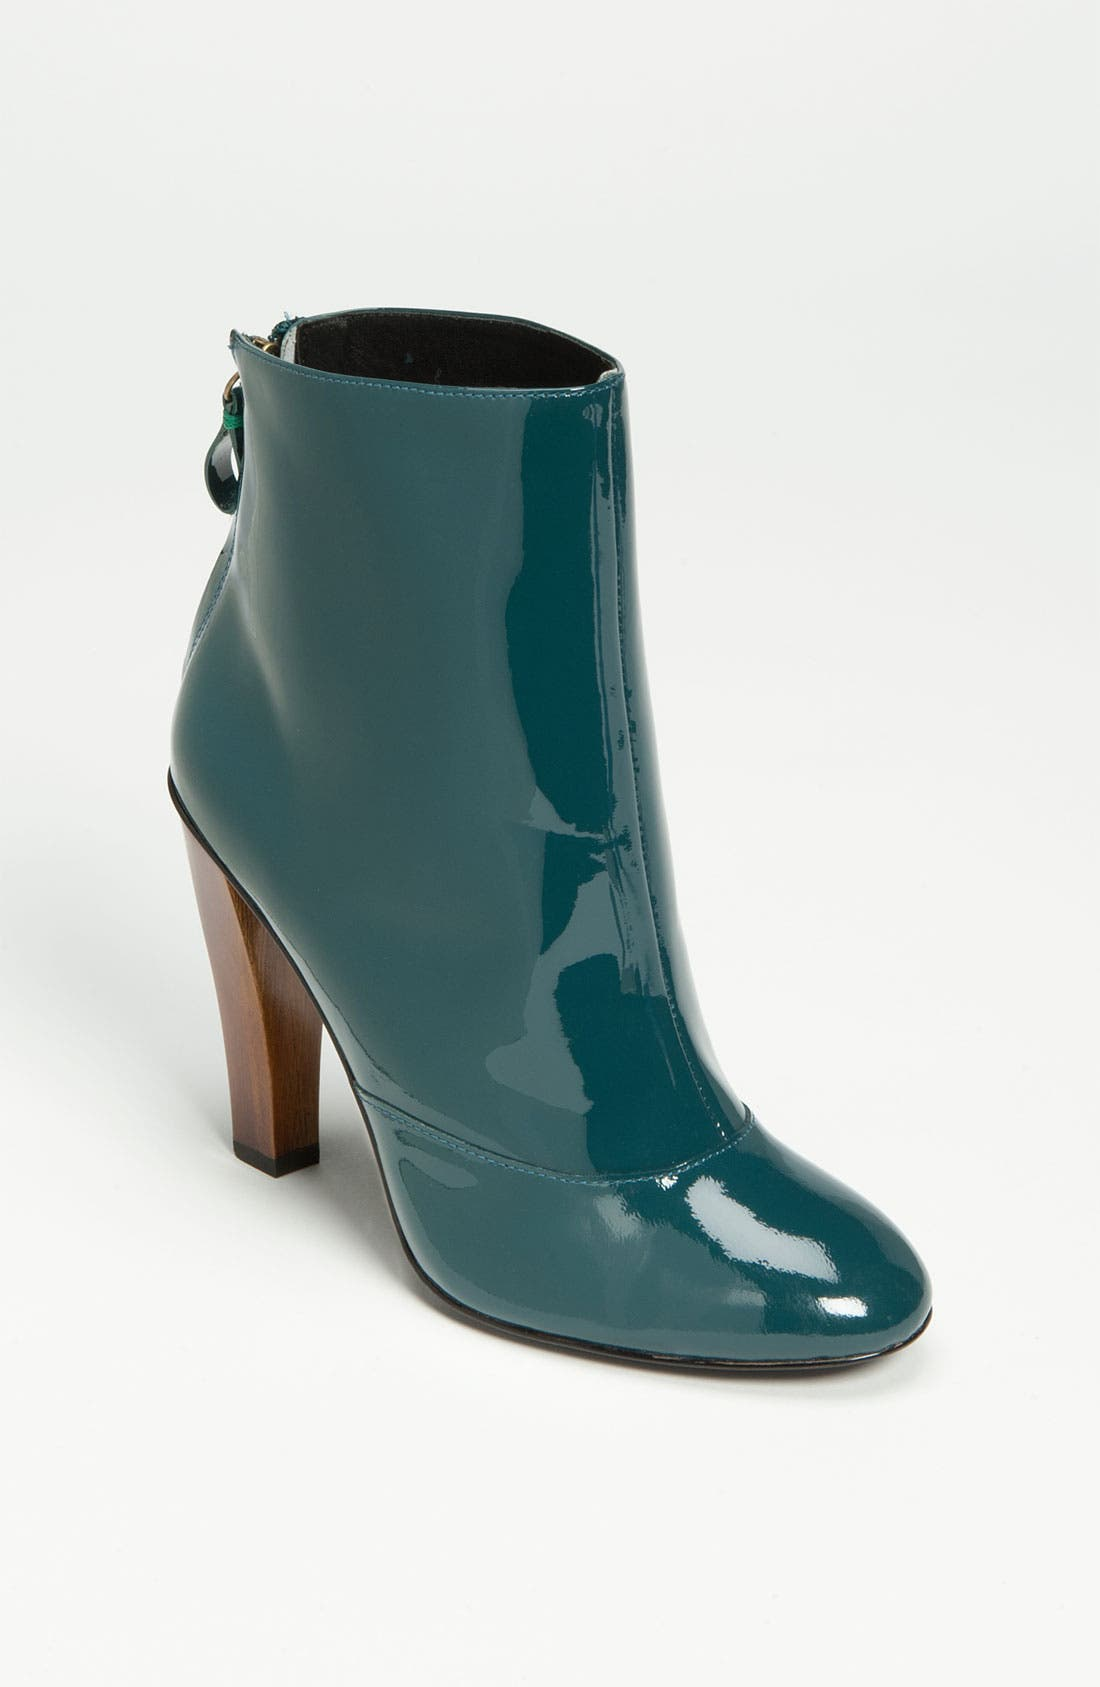 Main Image - 7 For All Mankind® 'Vicky' Boot (Online Exclusive)